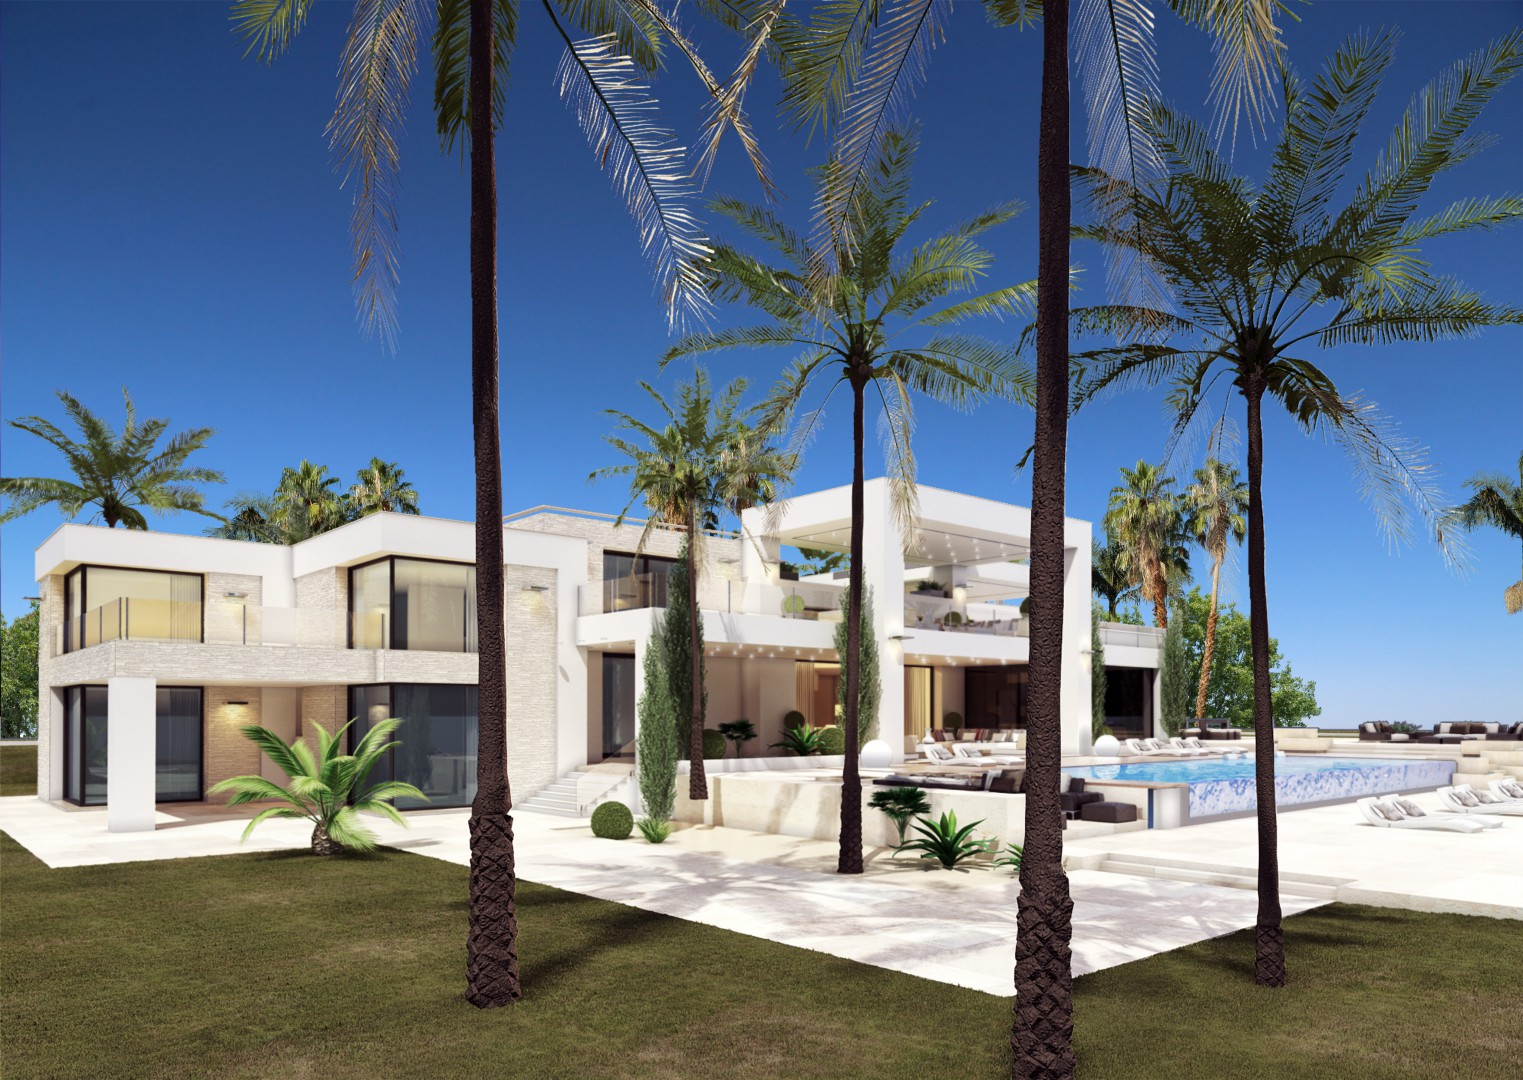 단독 가정 주택 용 매매 에 A truly jewel of villa at beachfront New Golden Mile Estepona, Costa Del Sol, 29680 스페인